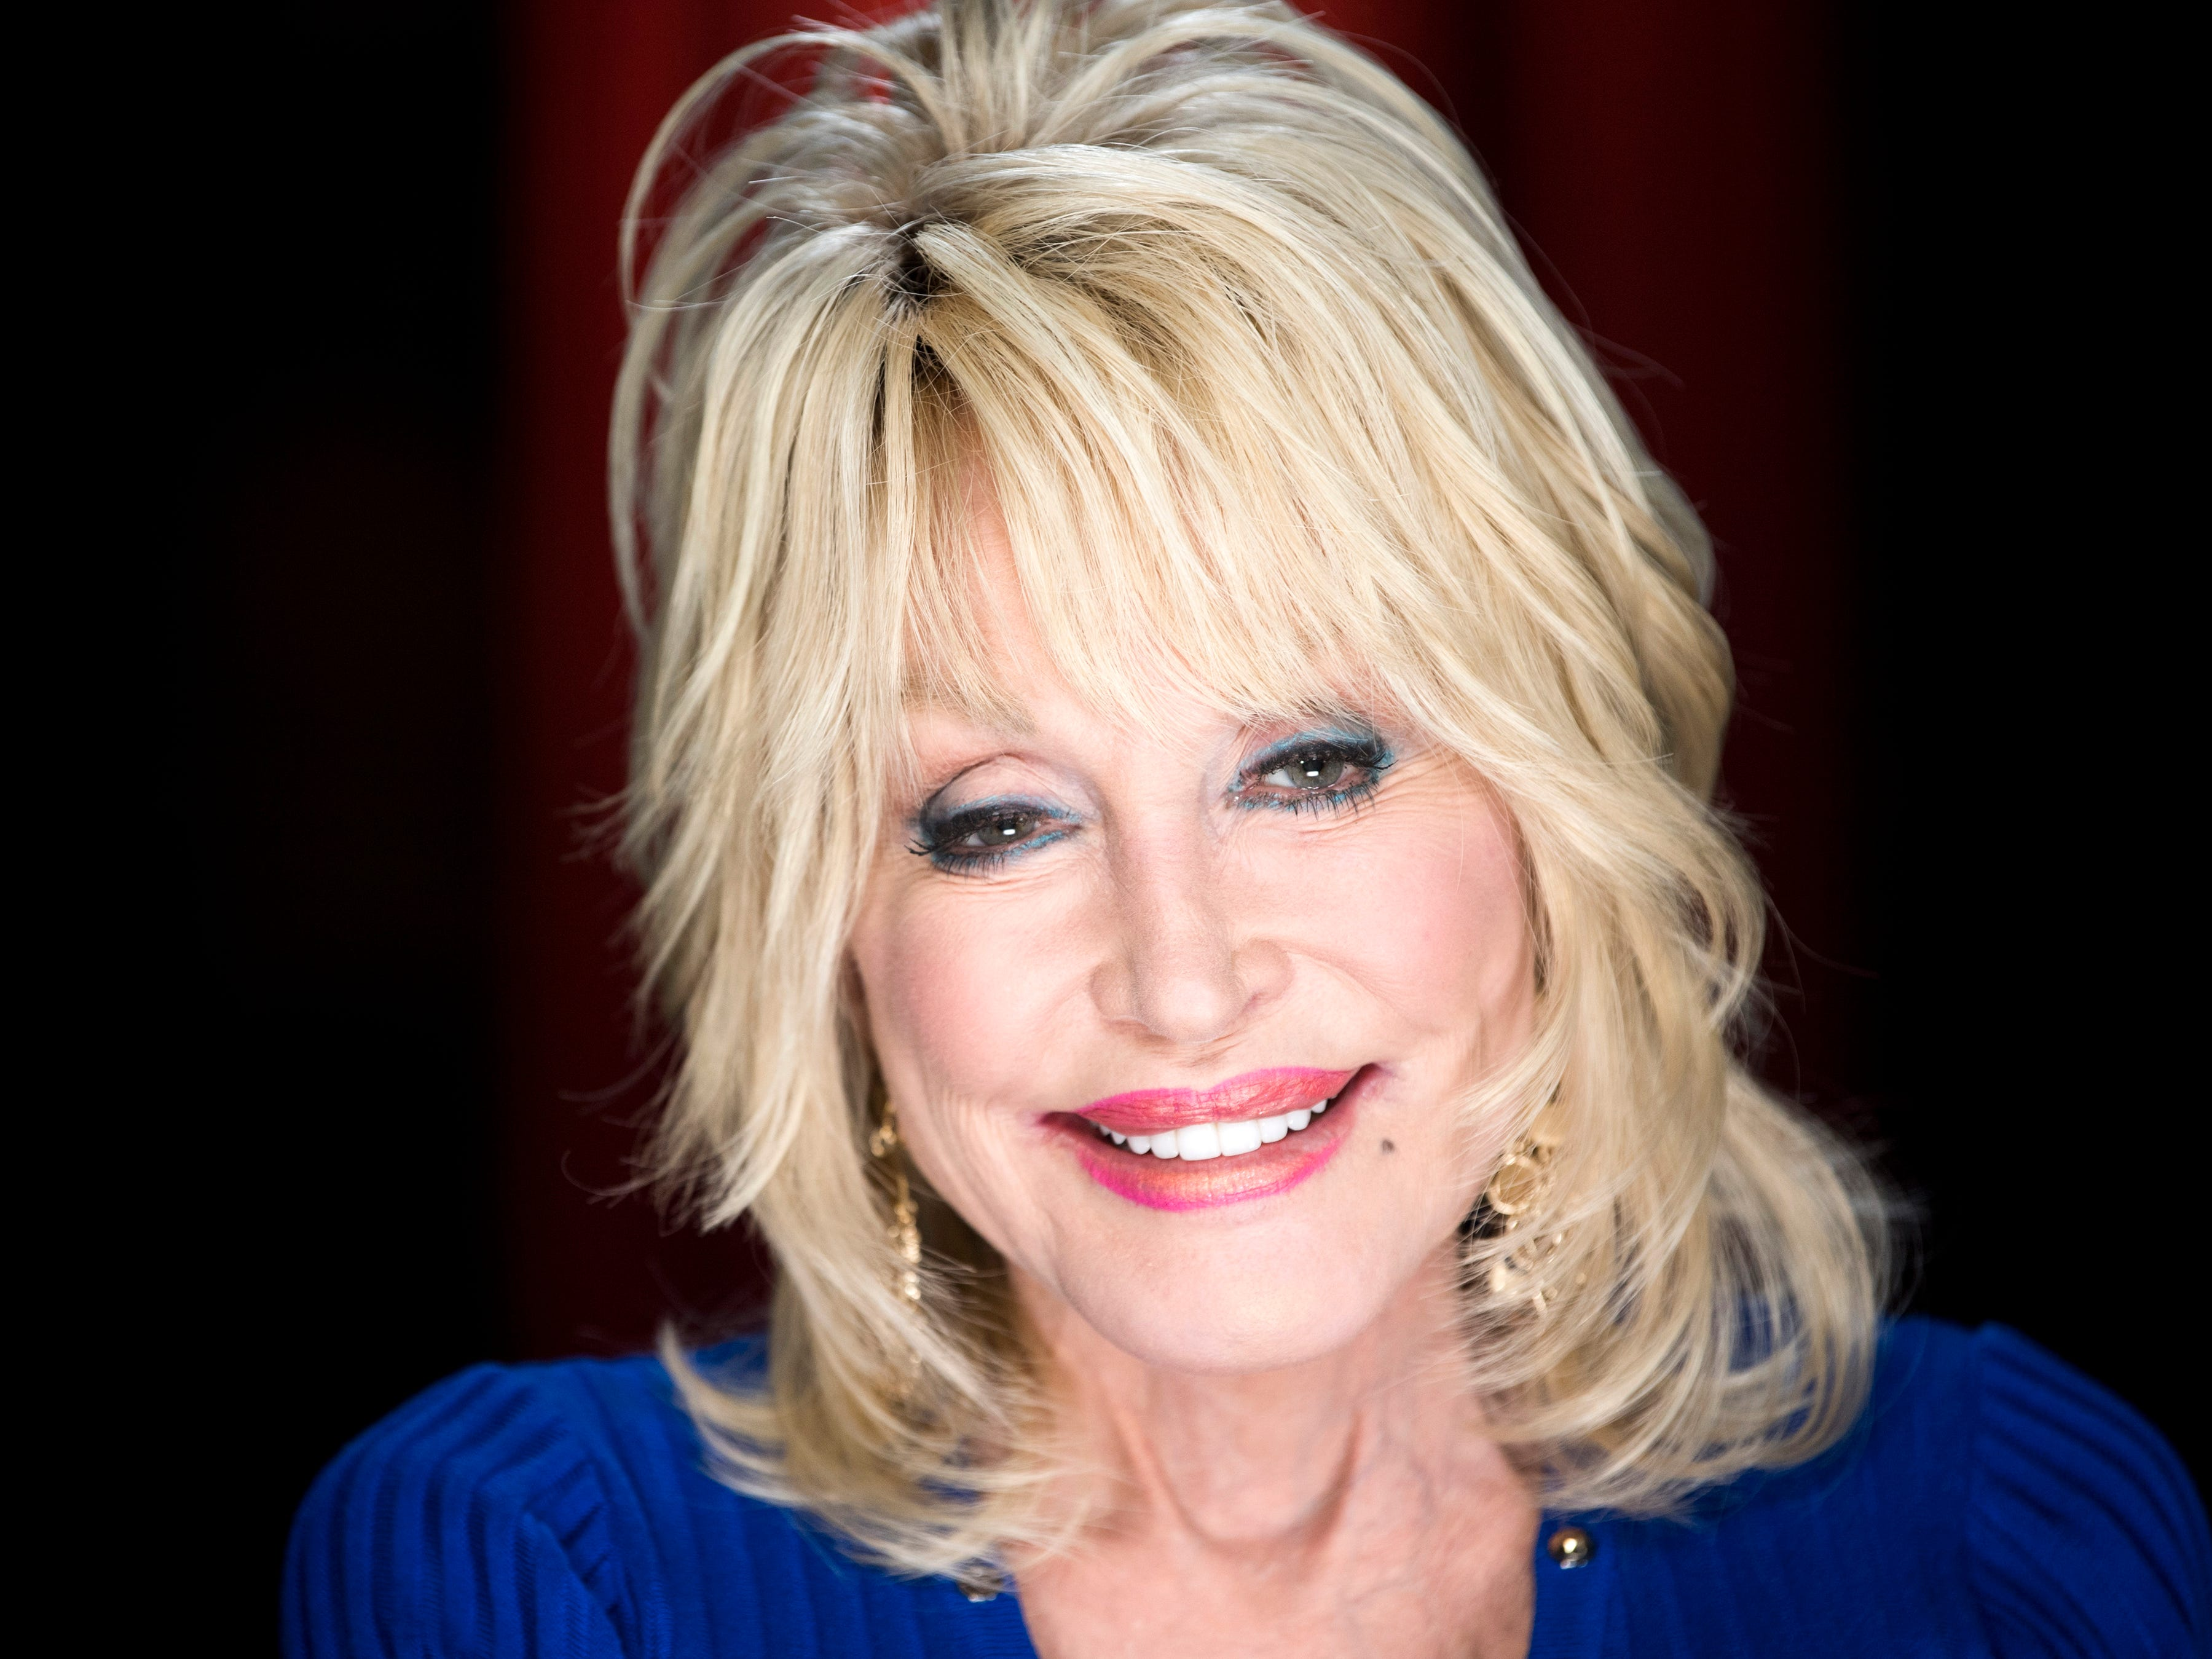 Dolly Parton speaks about the grand opening of Dollywood's new Wildwood Grove expansion on Friday, May 10, 2019.